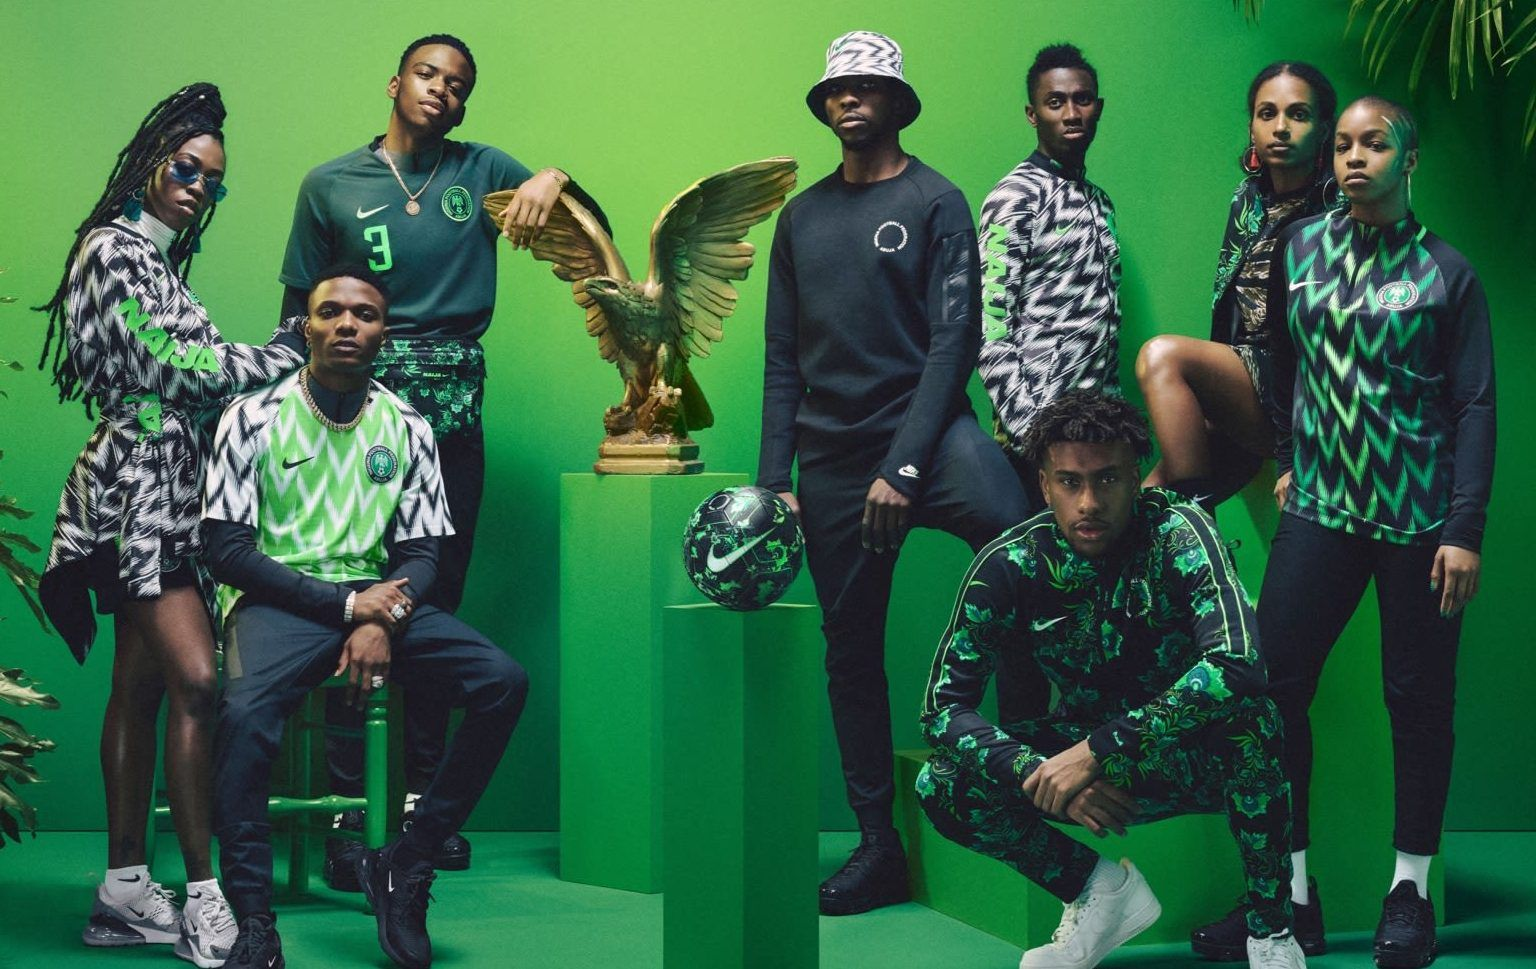 5acf0afab Why There's So Much Buzz About Nigeria's World Cup Kit